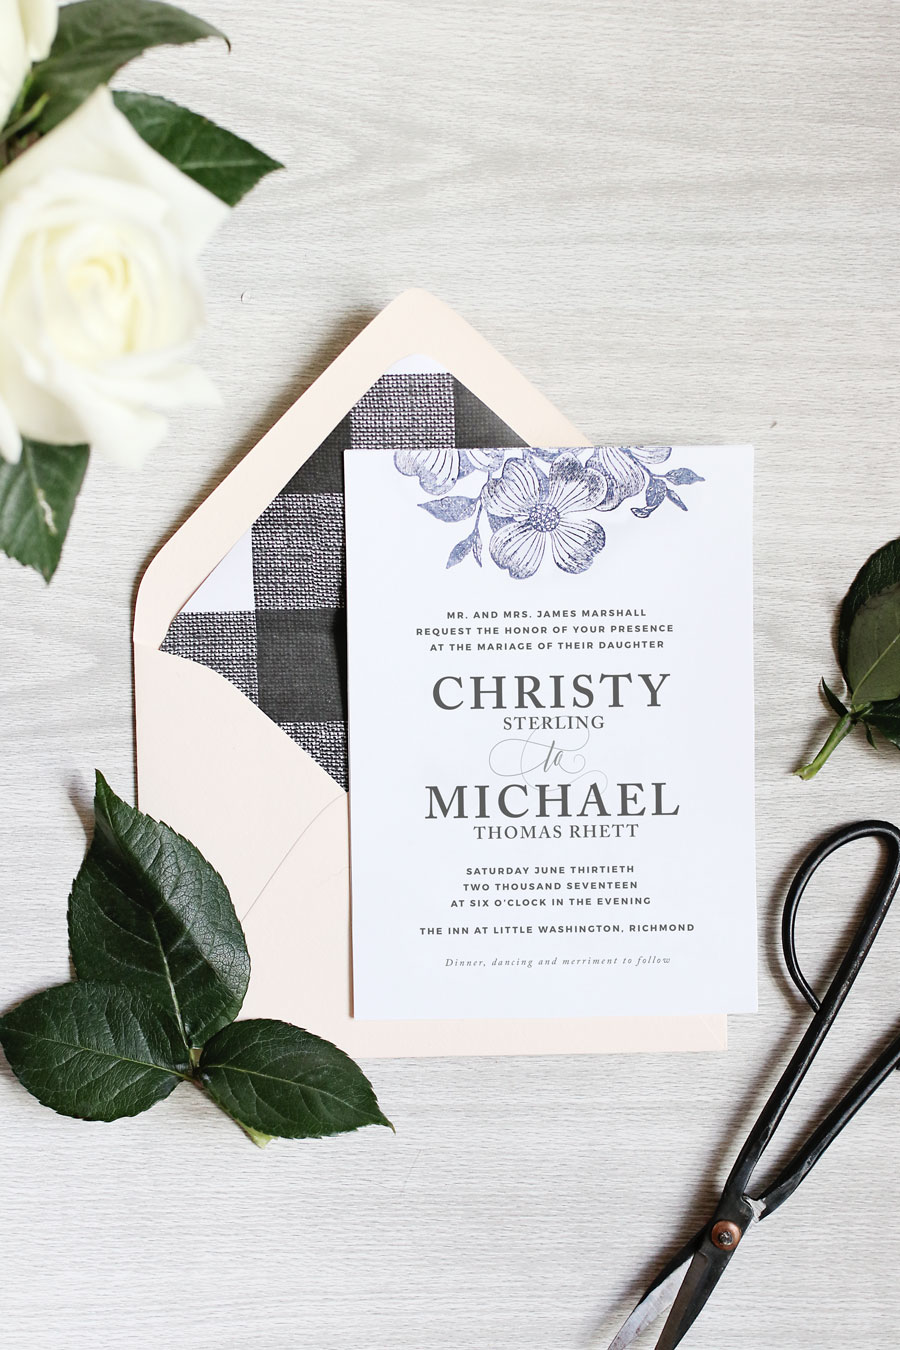 STAMPED FLORAL WEDDING INVITATIONS | Pipkin Paper Company